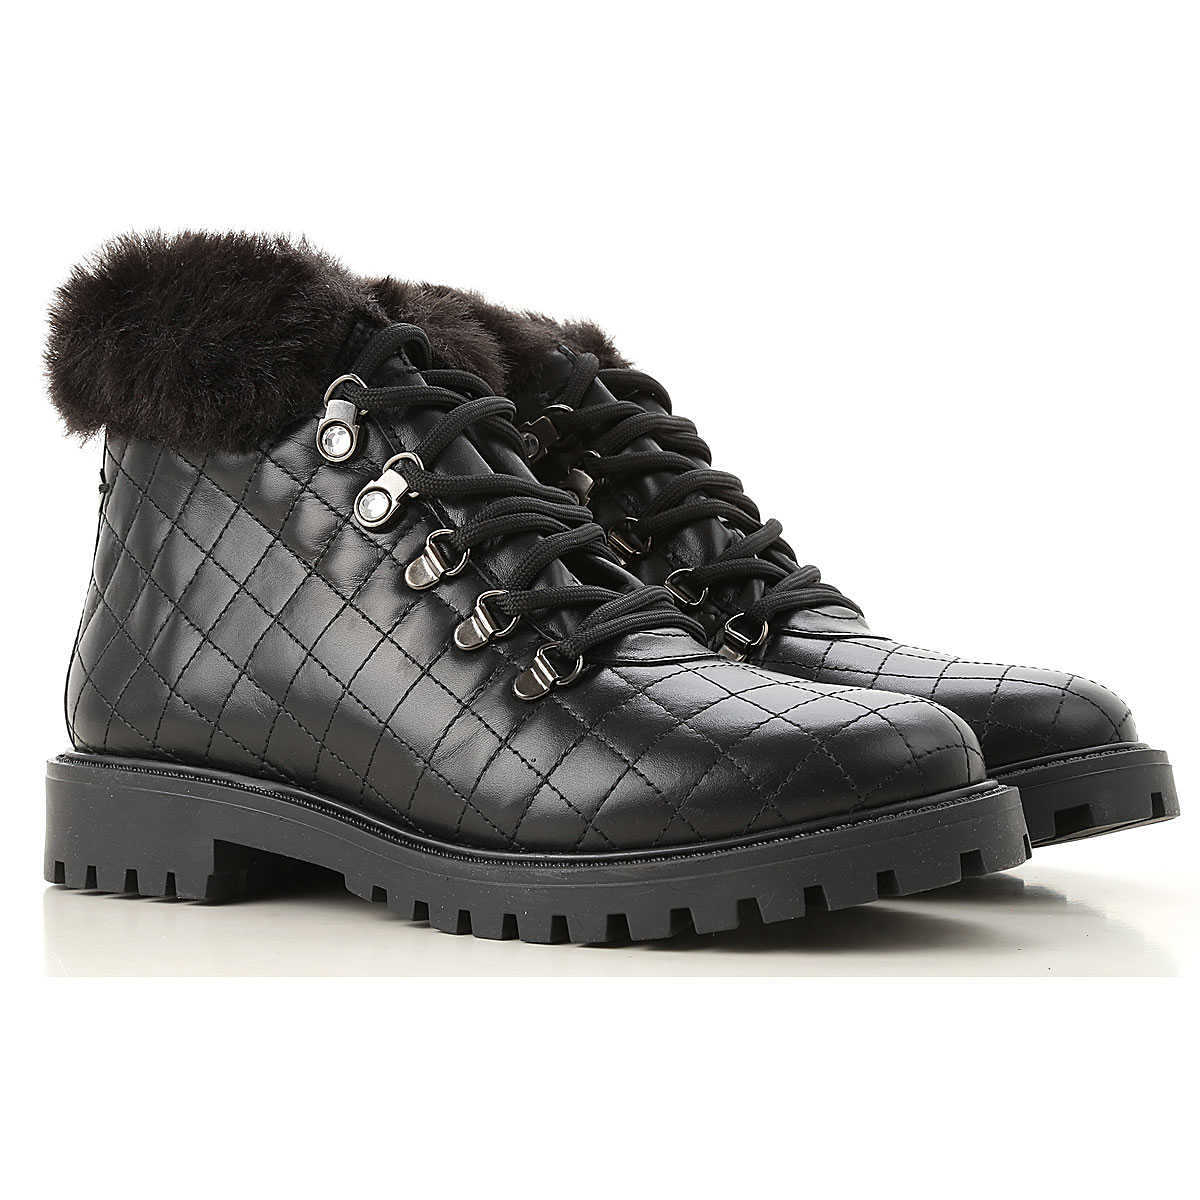 Guess Boots for Women Booties On Sale in Outlet Canada - GOOFASH - Womens BOOTS